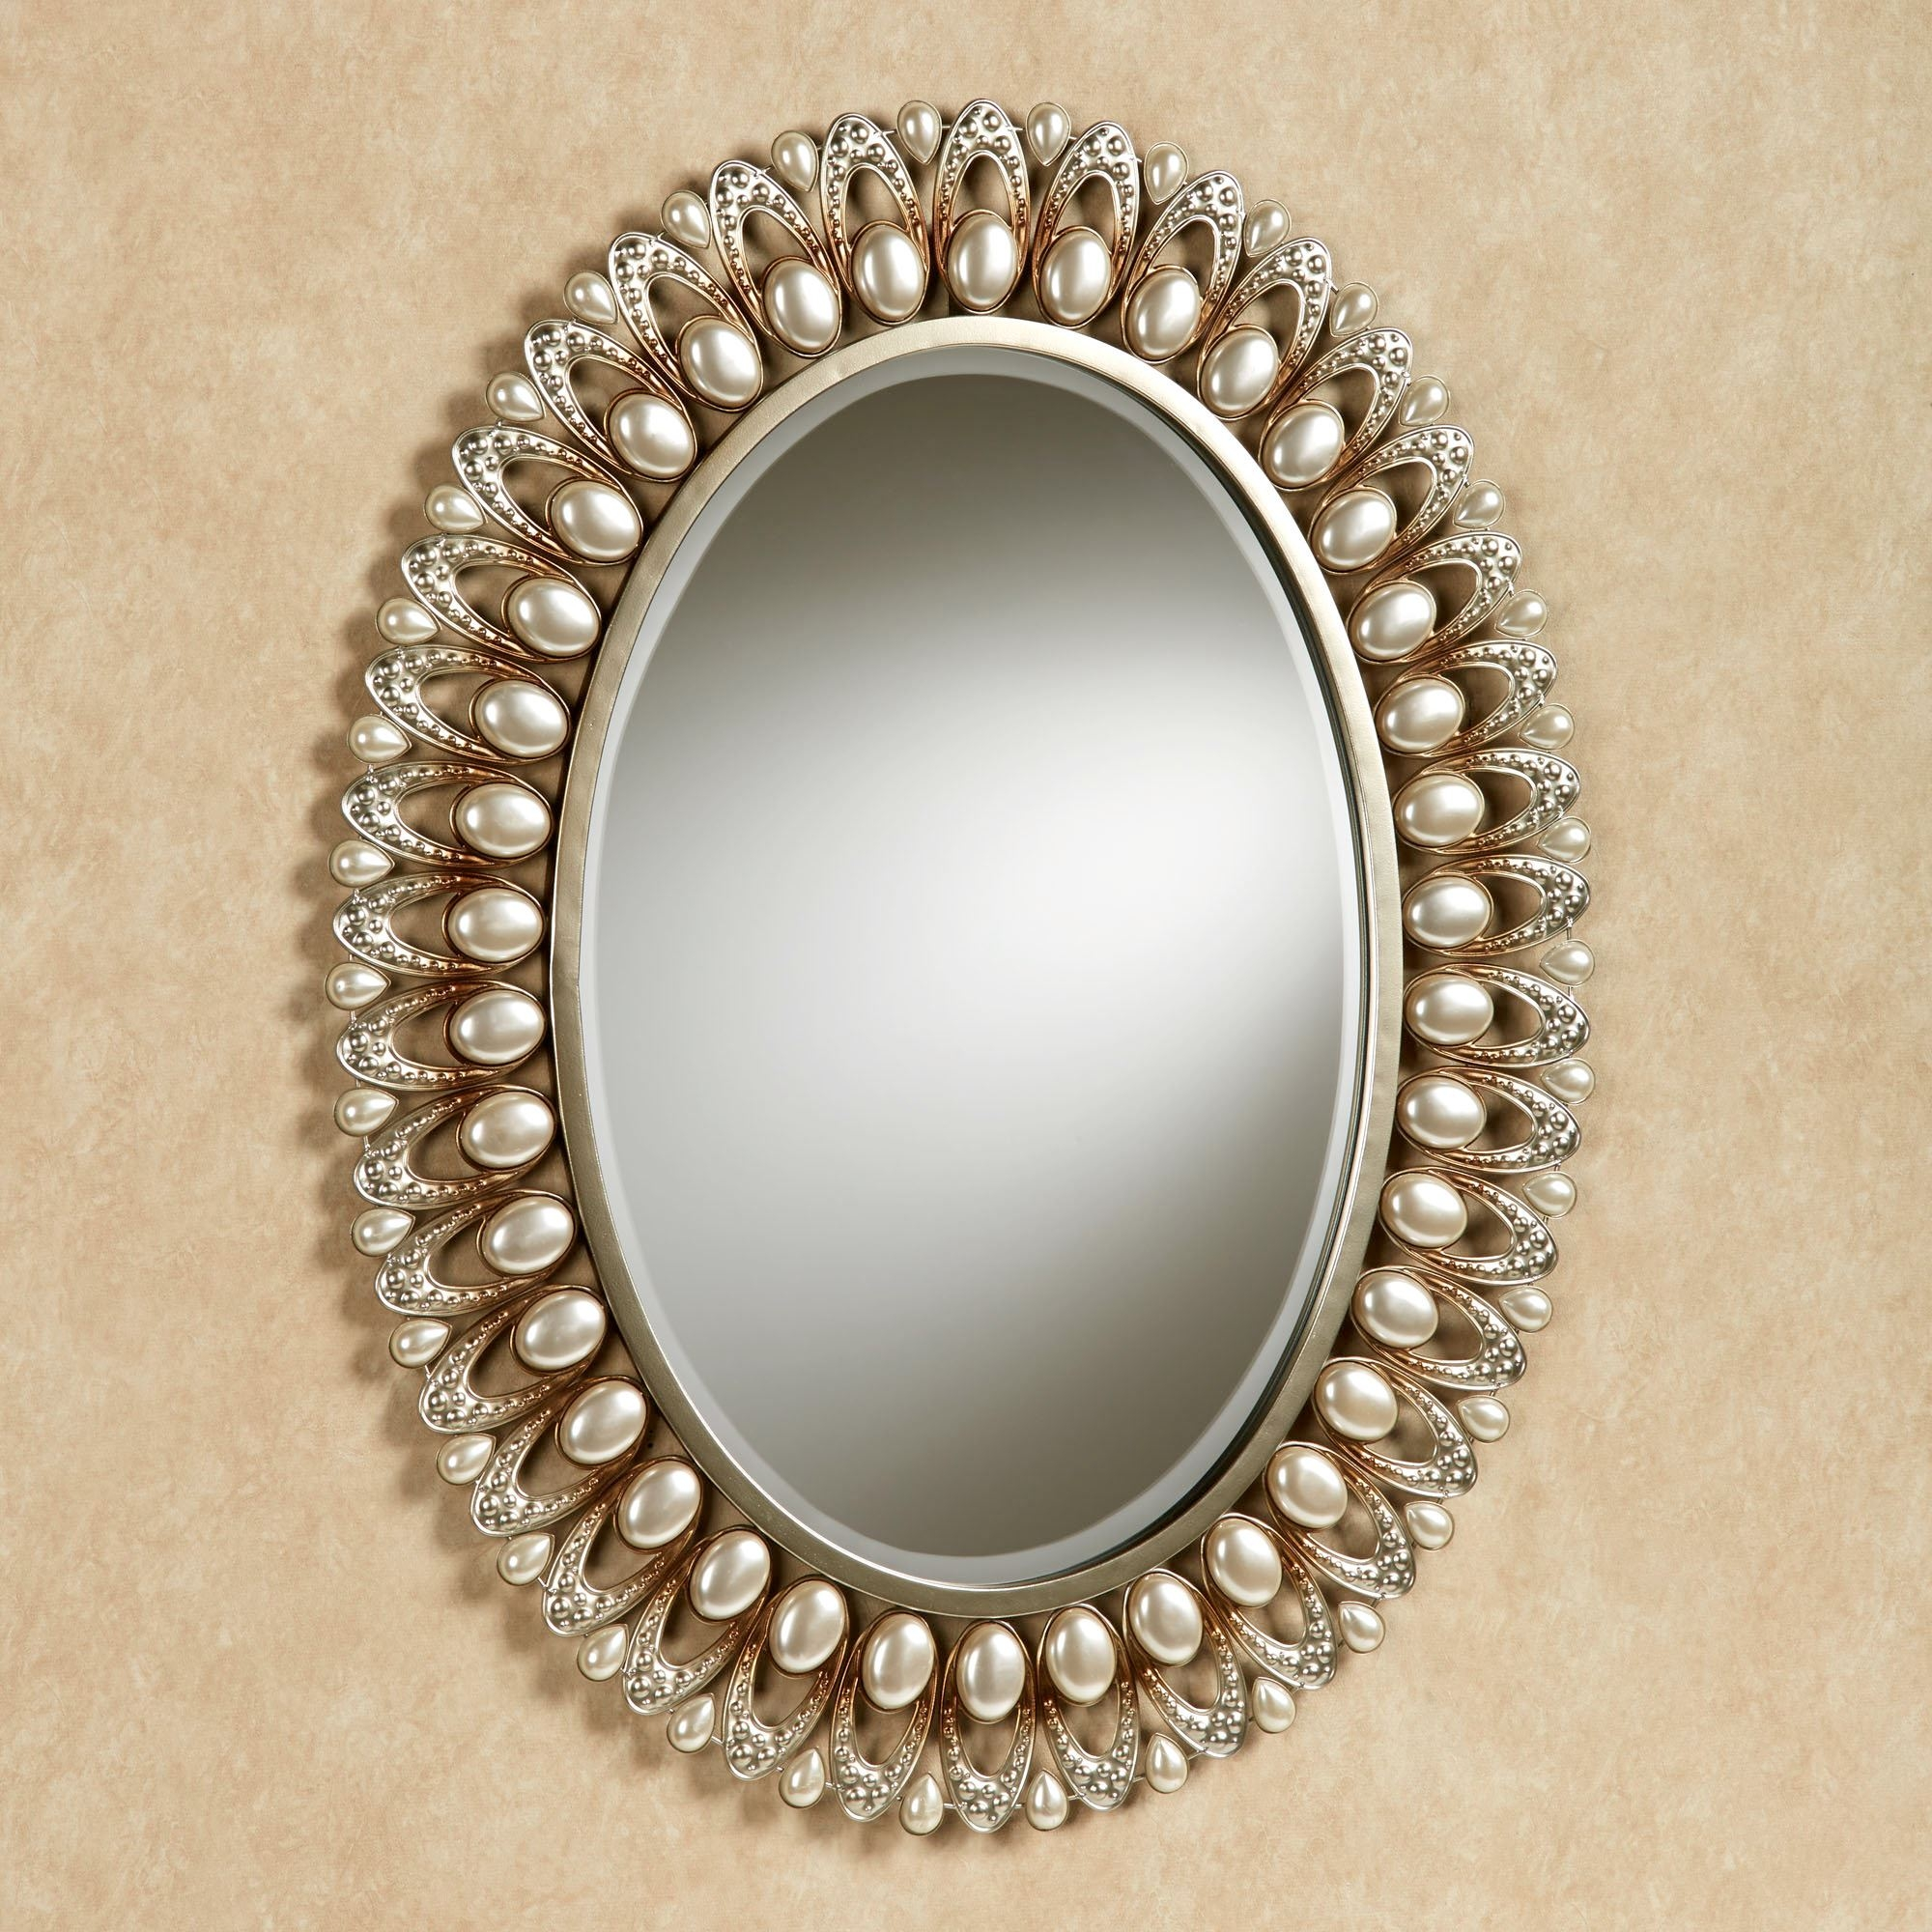 Julietta Pearl Oval Wall Mirror Intended For Oval Wall Mirrors (Photo 4 of 15)